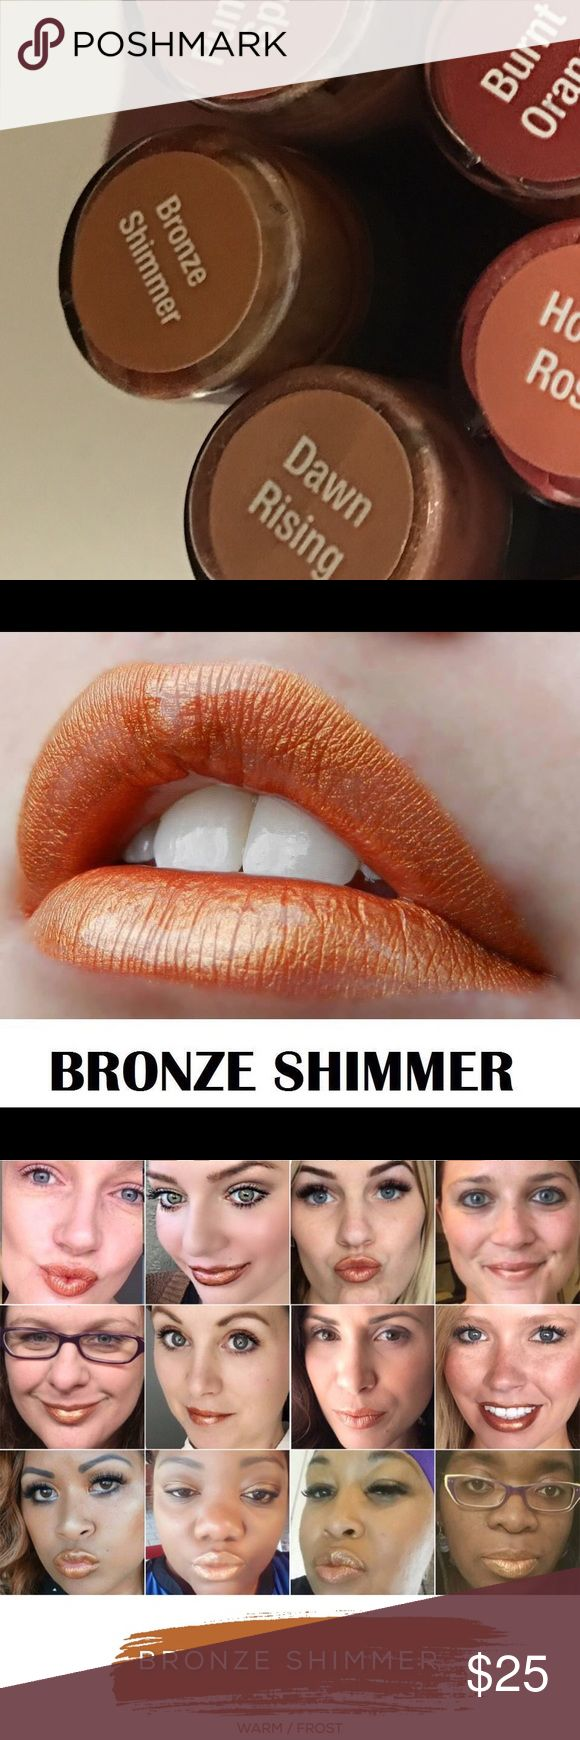 LipSense BRONZE SHIMMER Waterproof Lipstick 4-18 hour waterproof, smudge-proof, smear-proof, Kiss-proof, life-proof, vegan, gluten-free, lead-free AMAZING lipstick in Bronze Shimmer! LipSense Makeup Lipstick